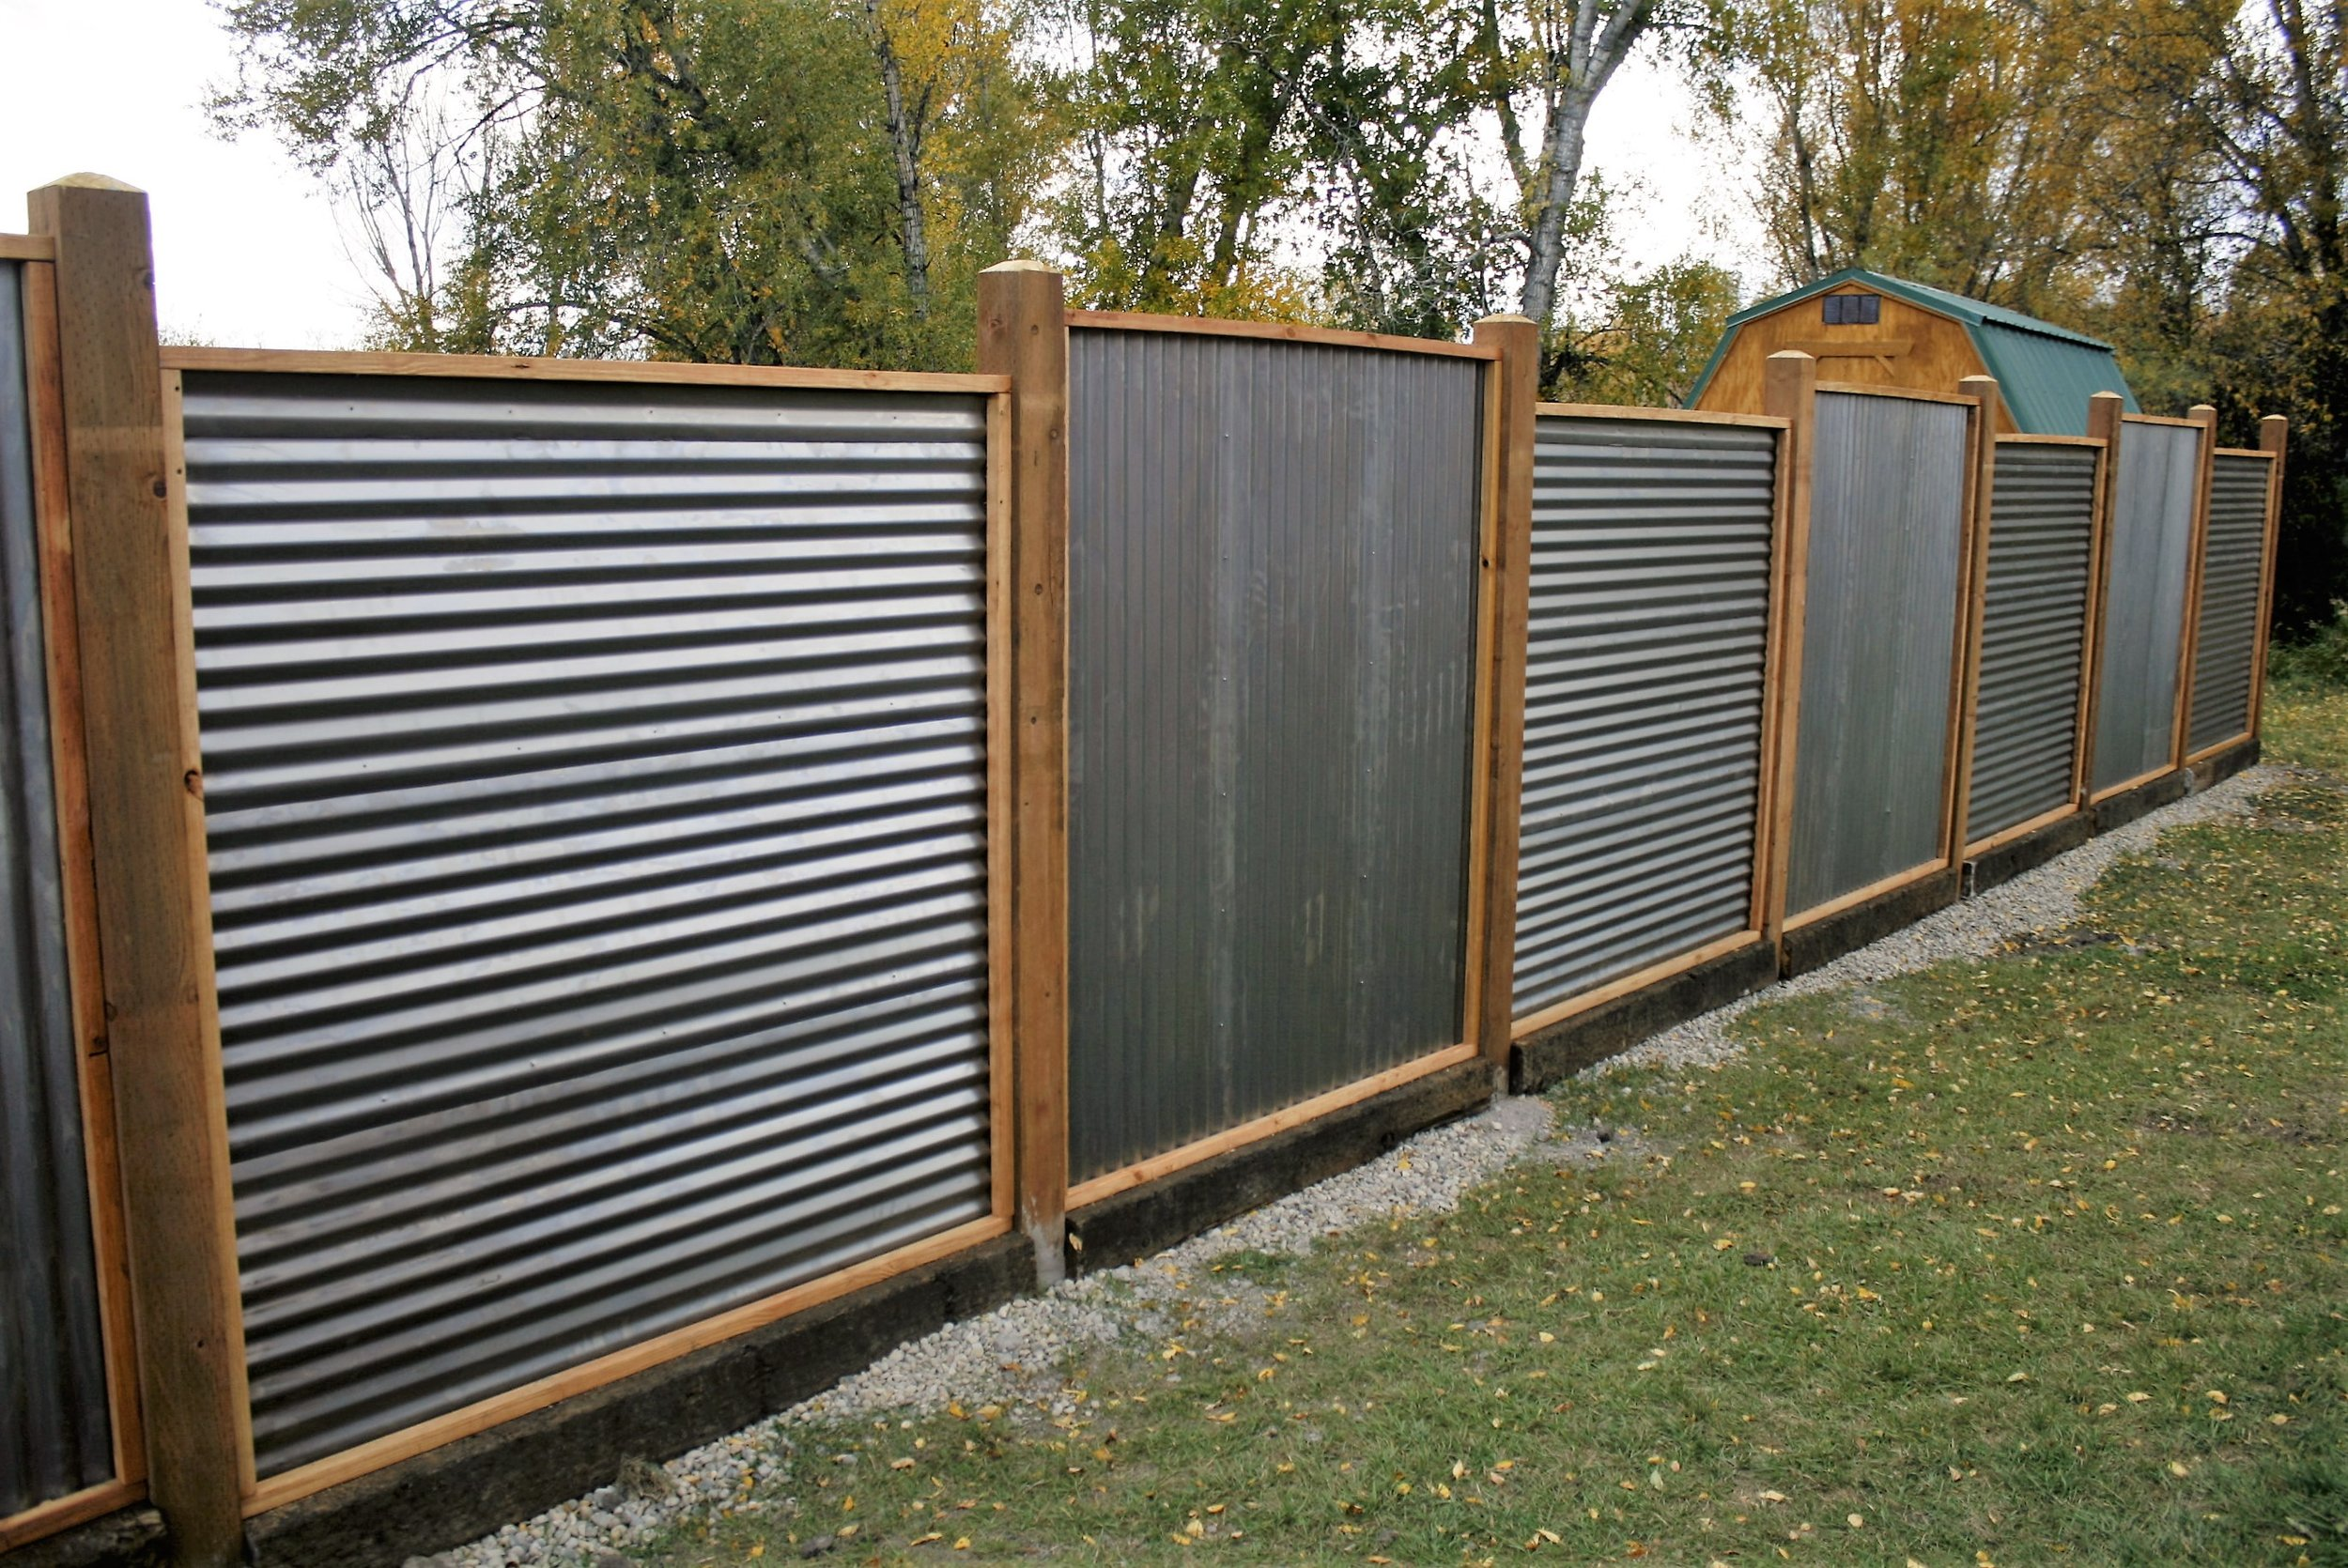 8 foot fence with railroad tie base, rusted metal sheeting, clients design